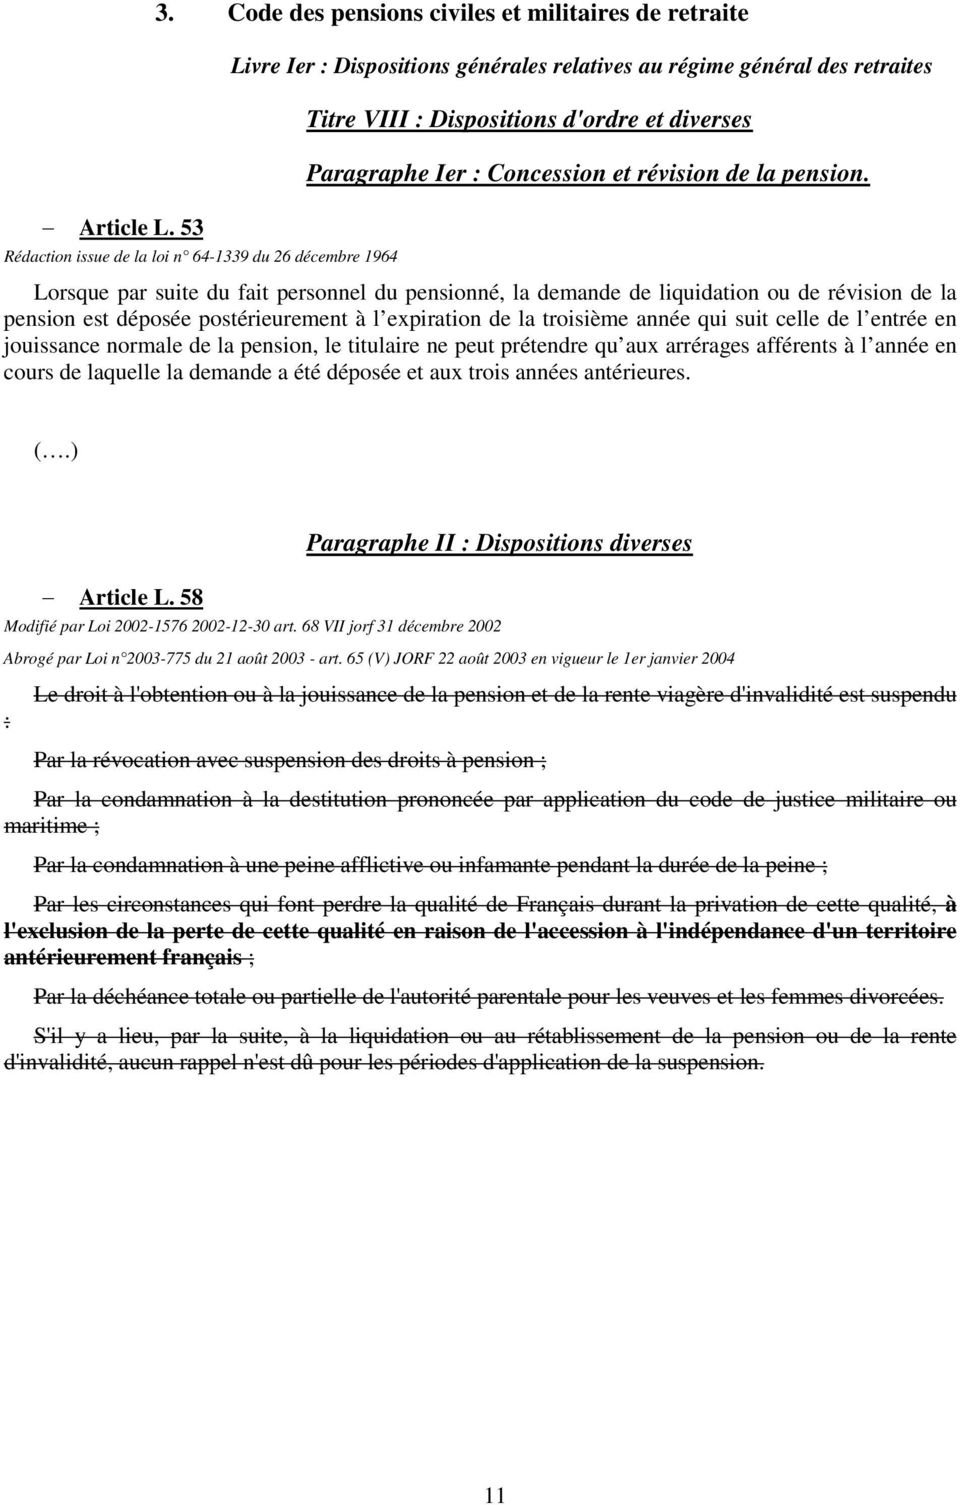 Dispositions d'ordre et diverses Paragraphe Ier : Concession et révision de la pension.